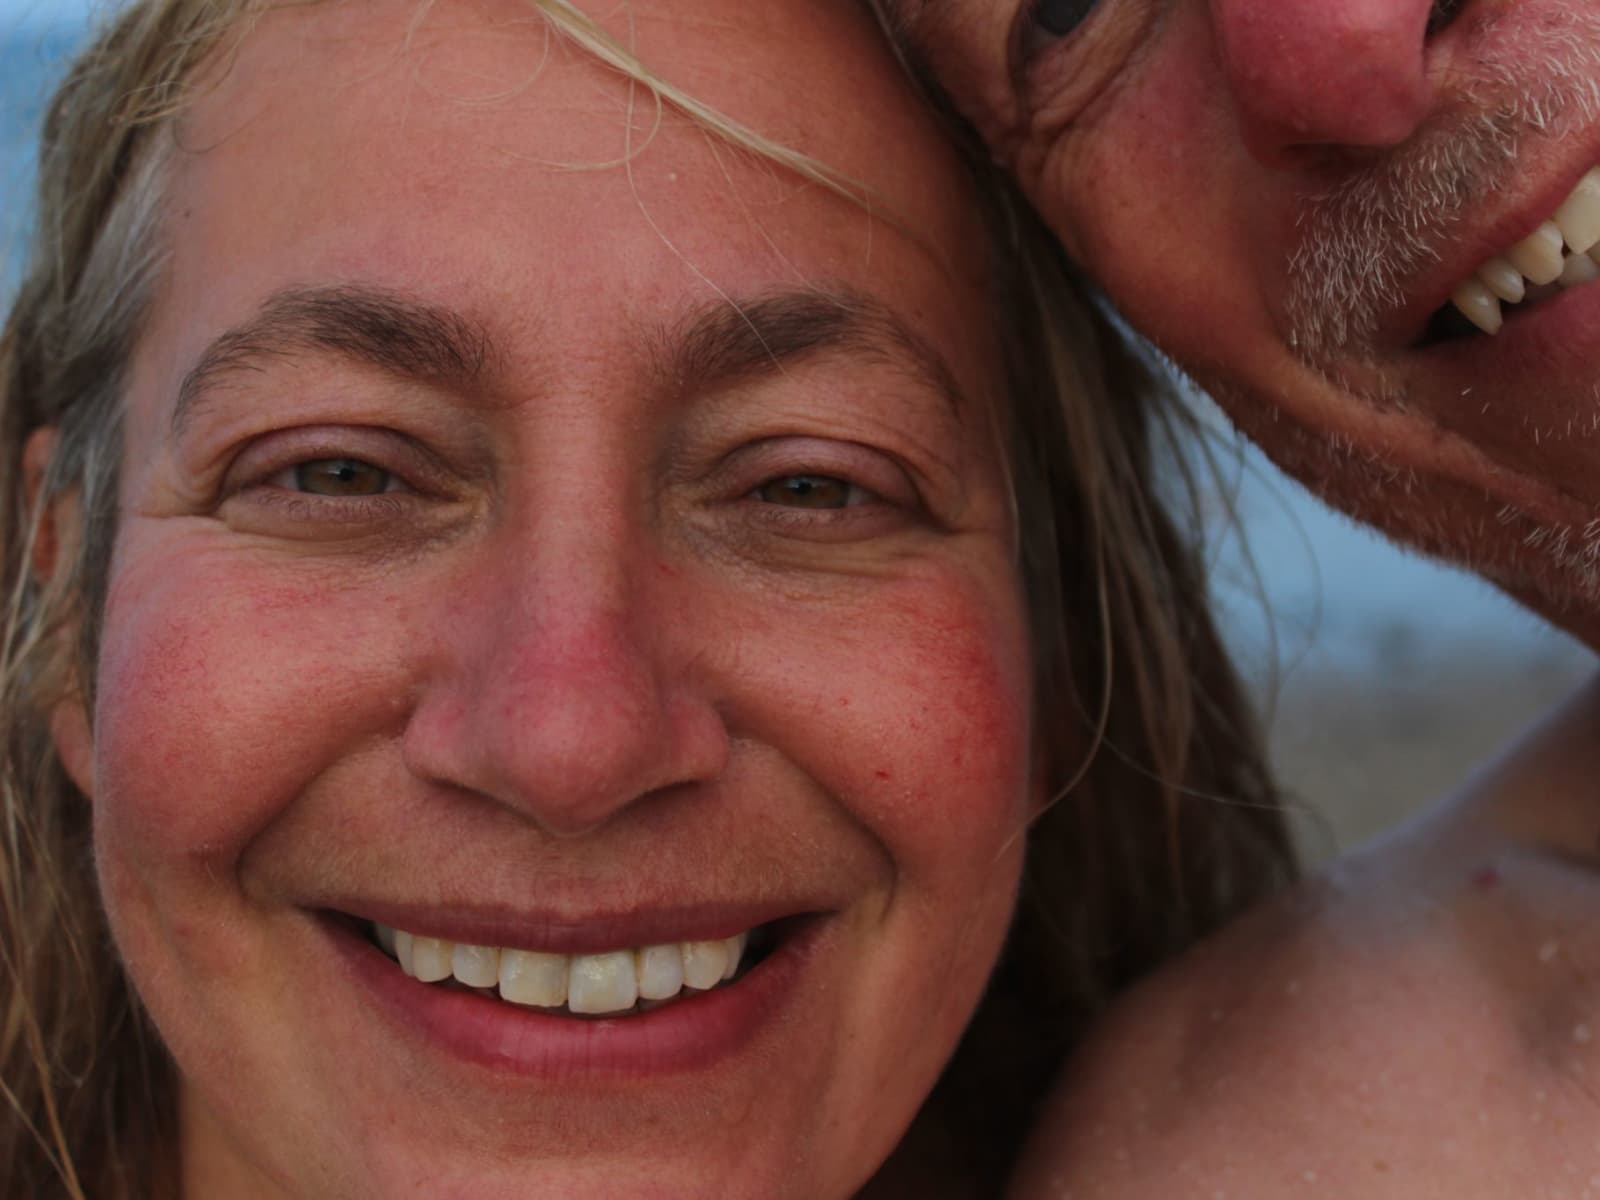 Tulin & Bruce from Bristol, United Kingdom